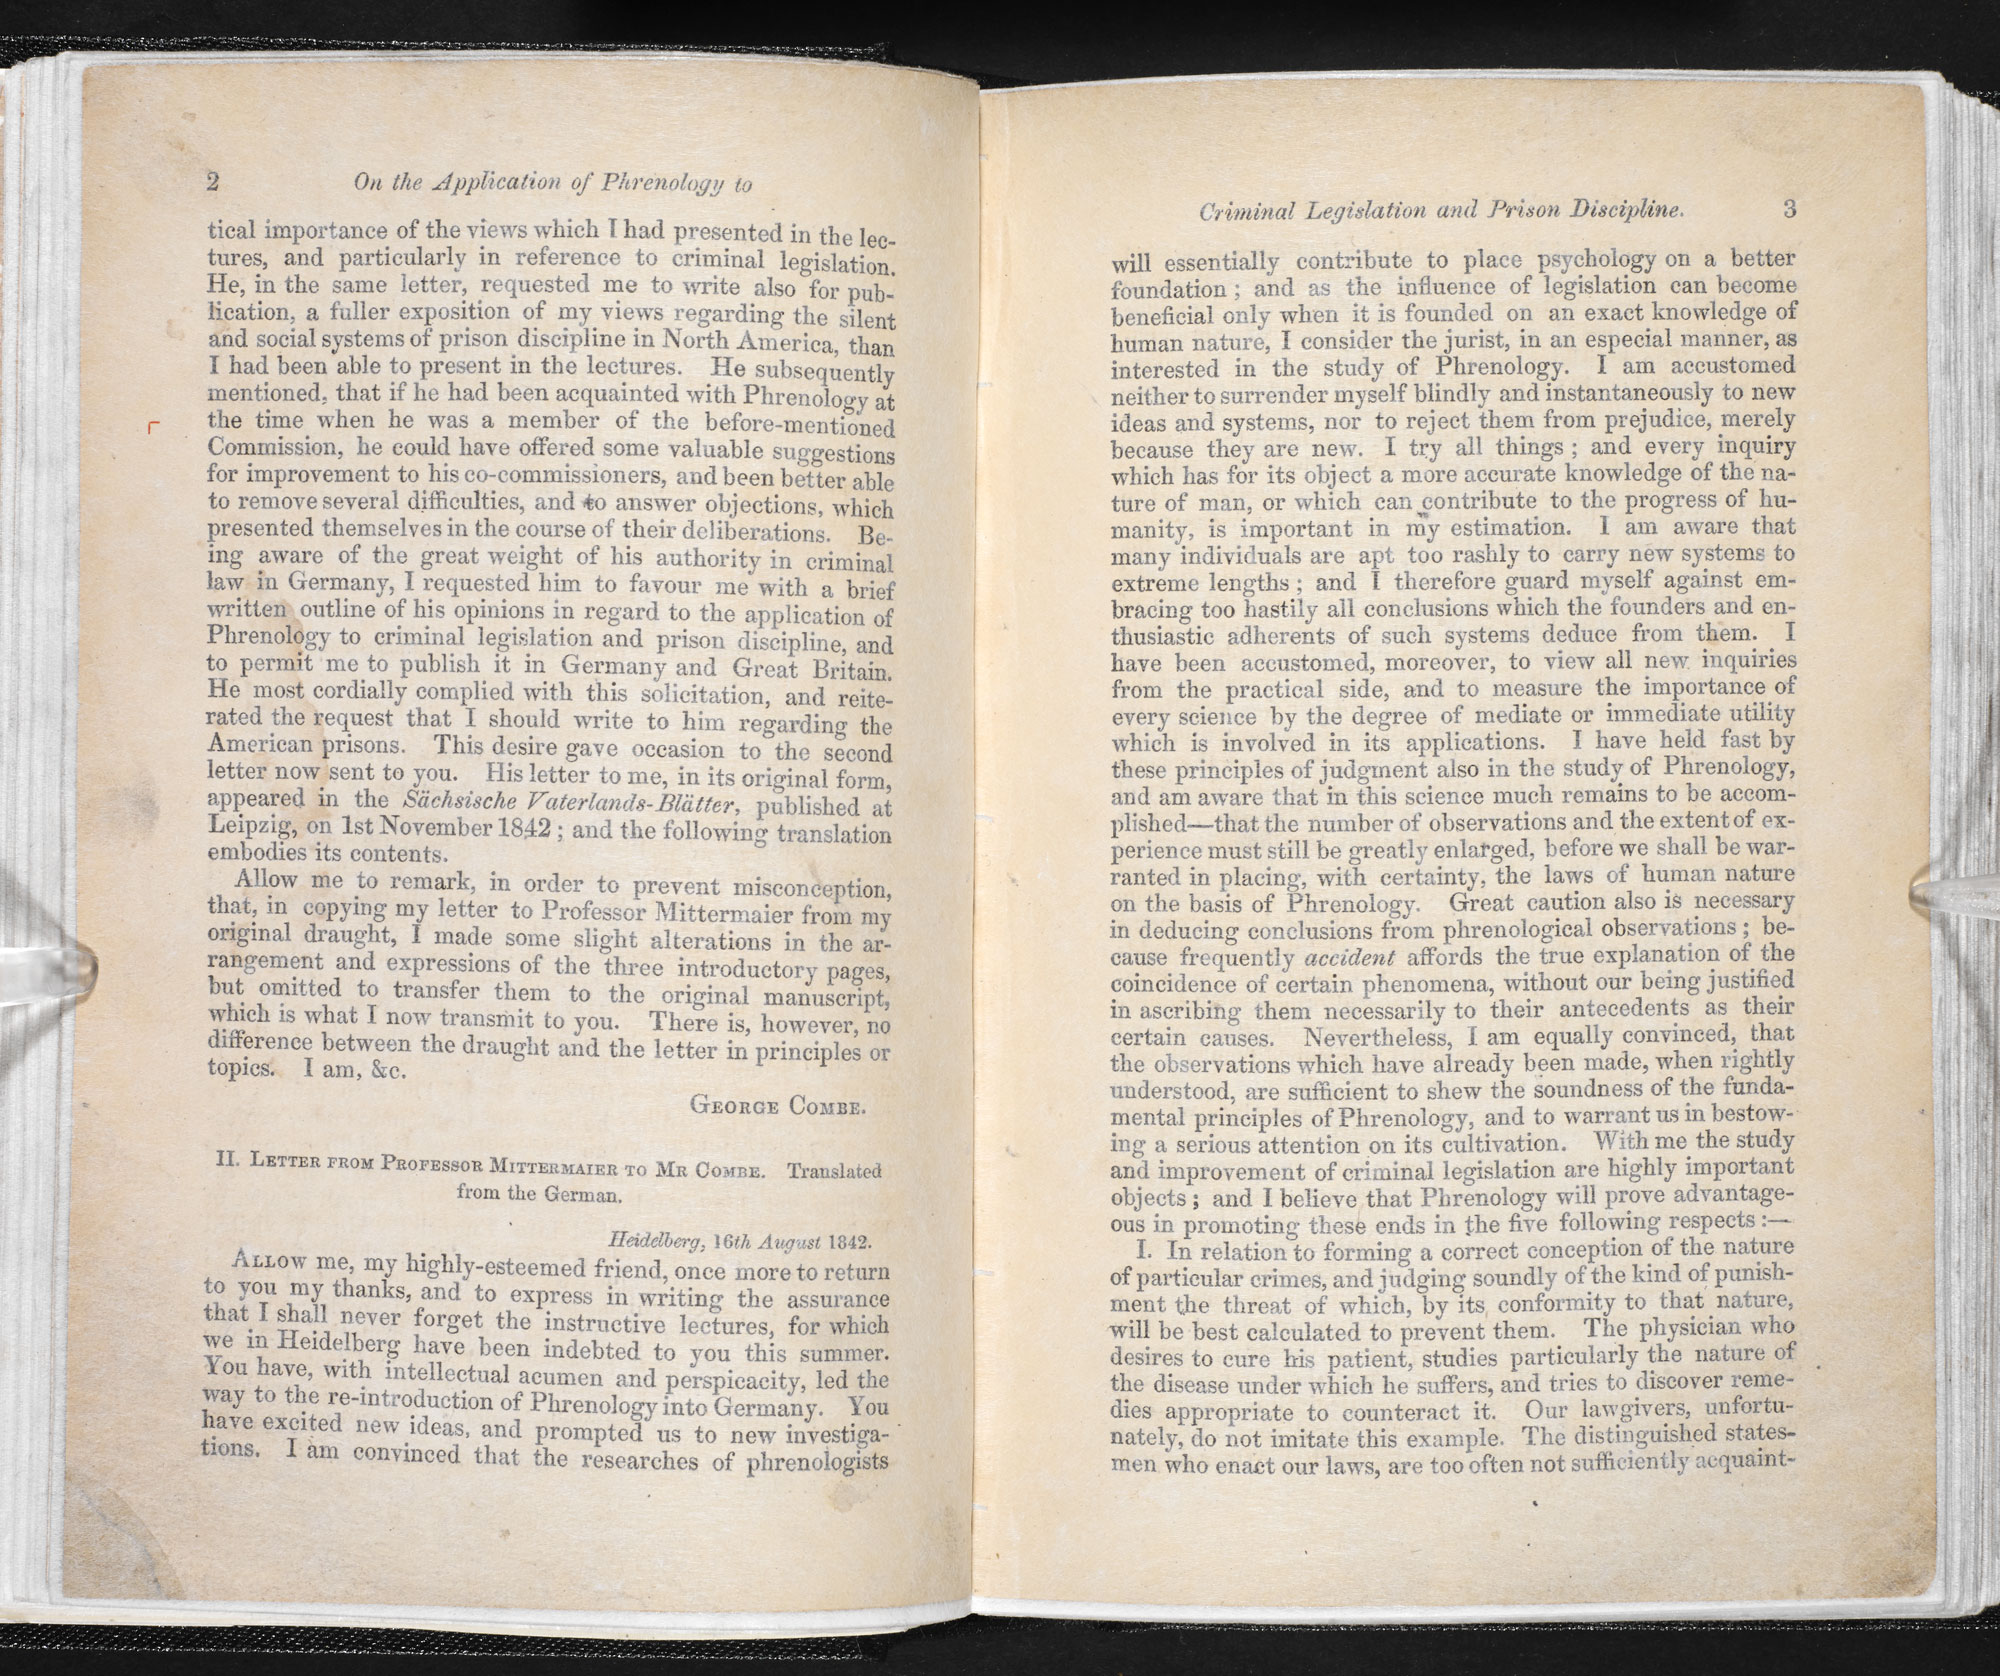 On the application of phrenology to criminal legislation and prison discipline [page: 2-3]